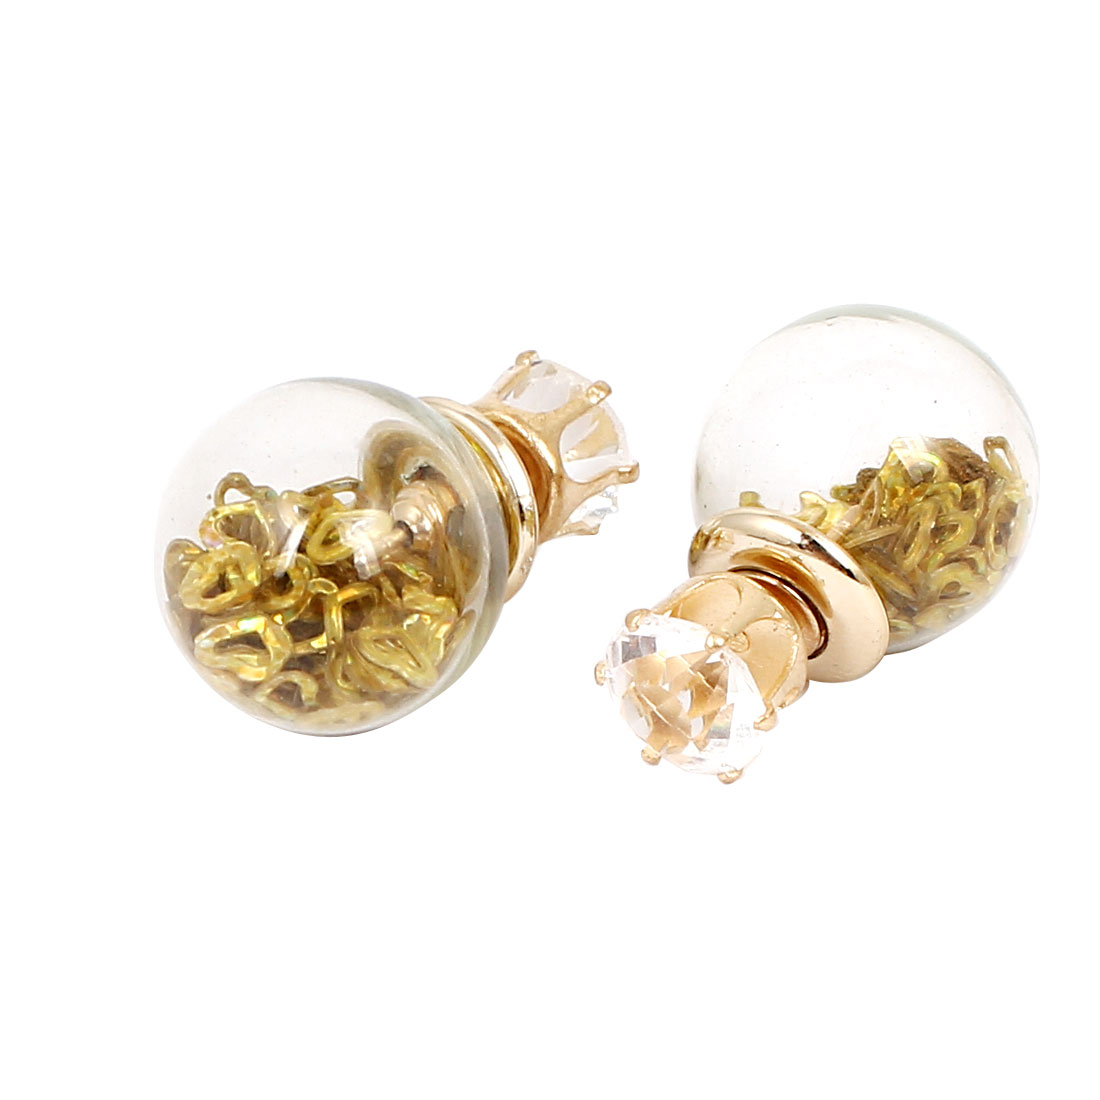 Women Faux Crystal Decor Round Bulb Shape Double Sides Stud Earrings Gold Tone Pair